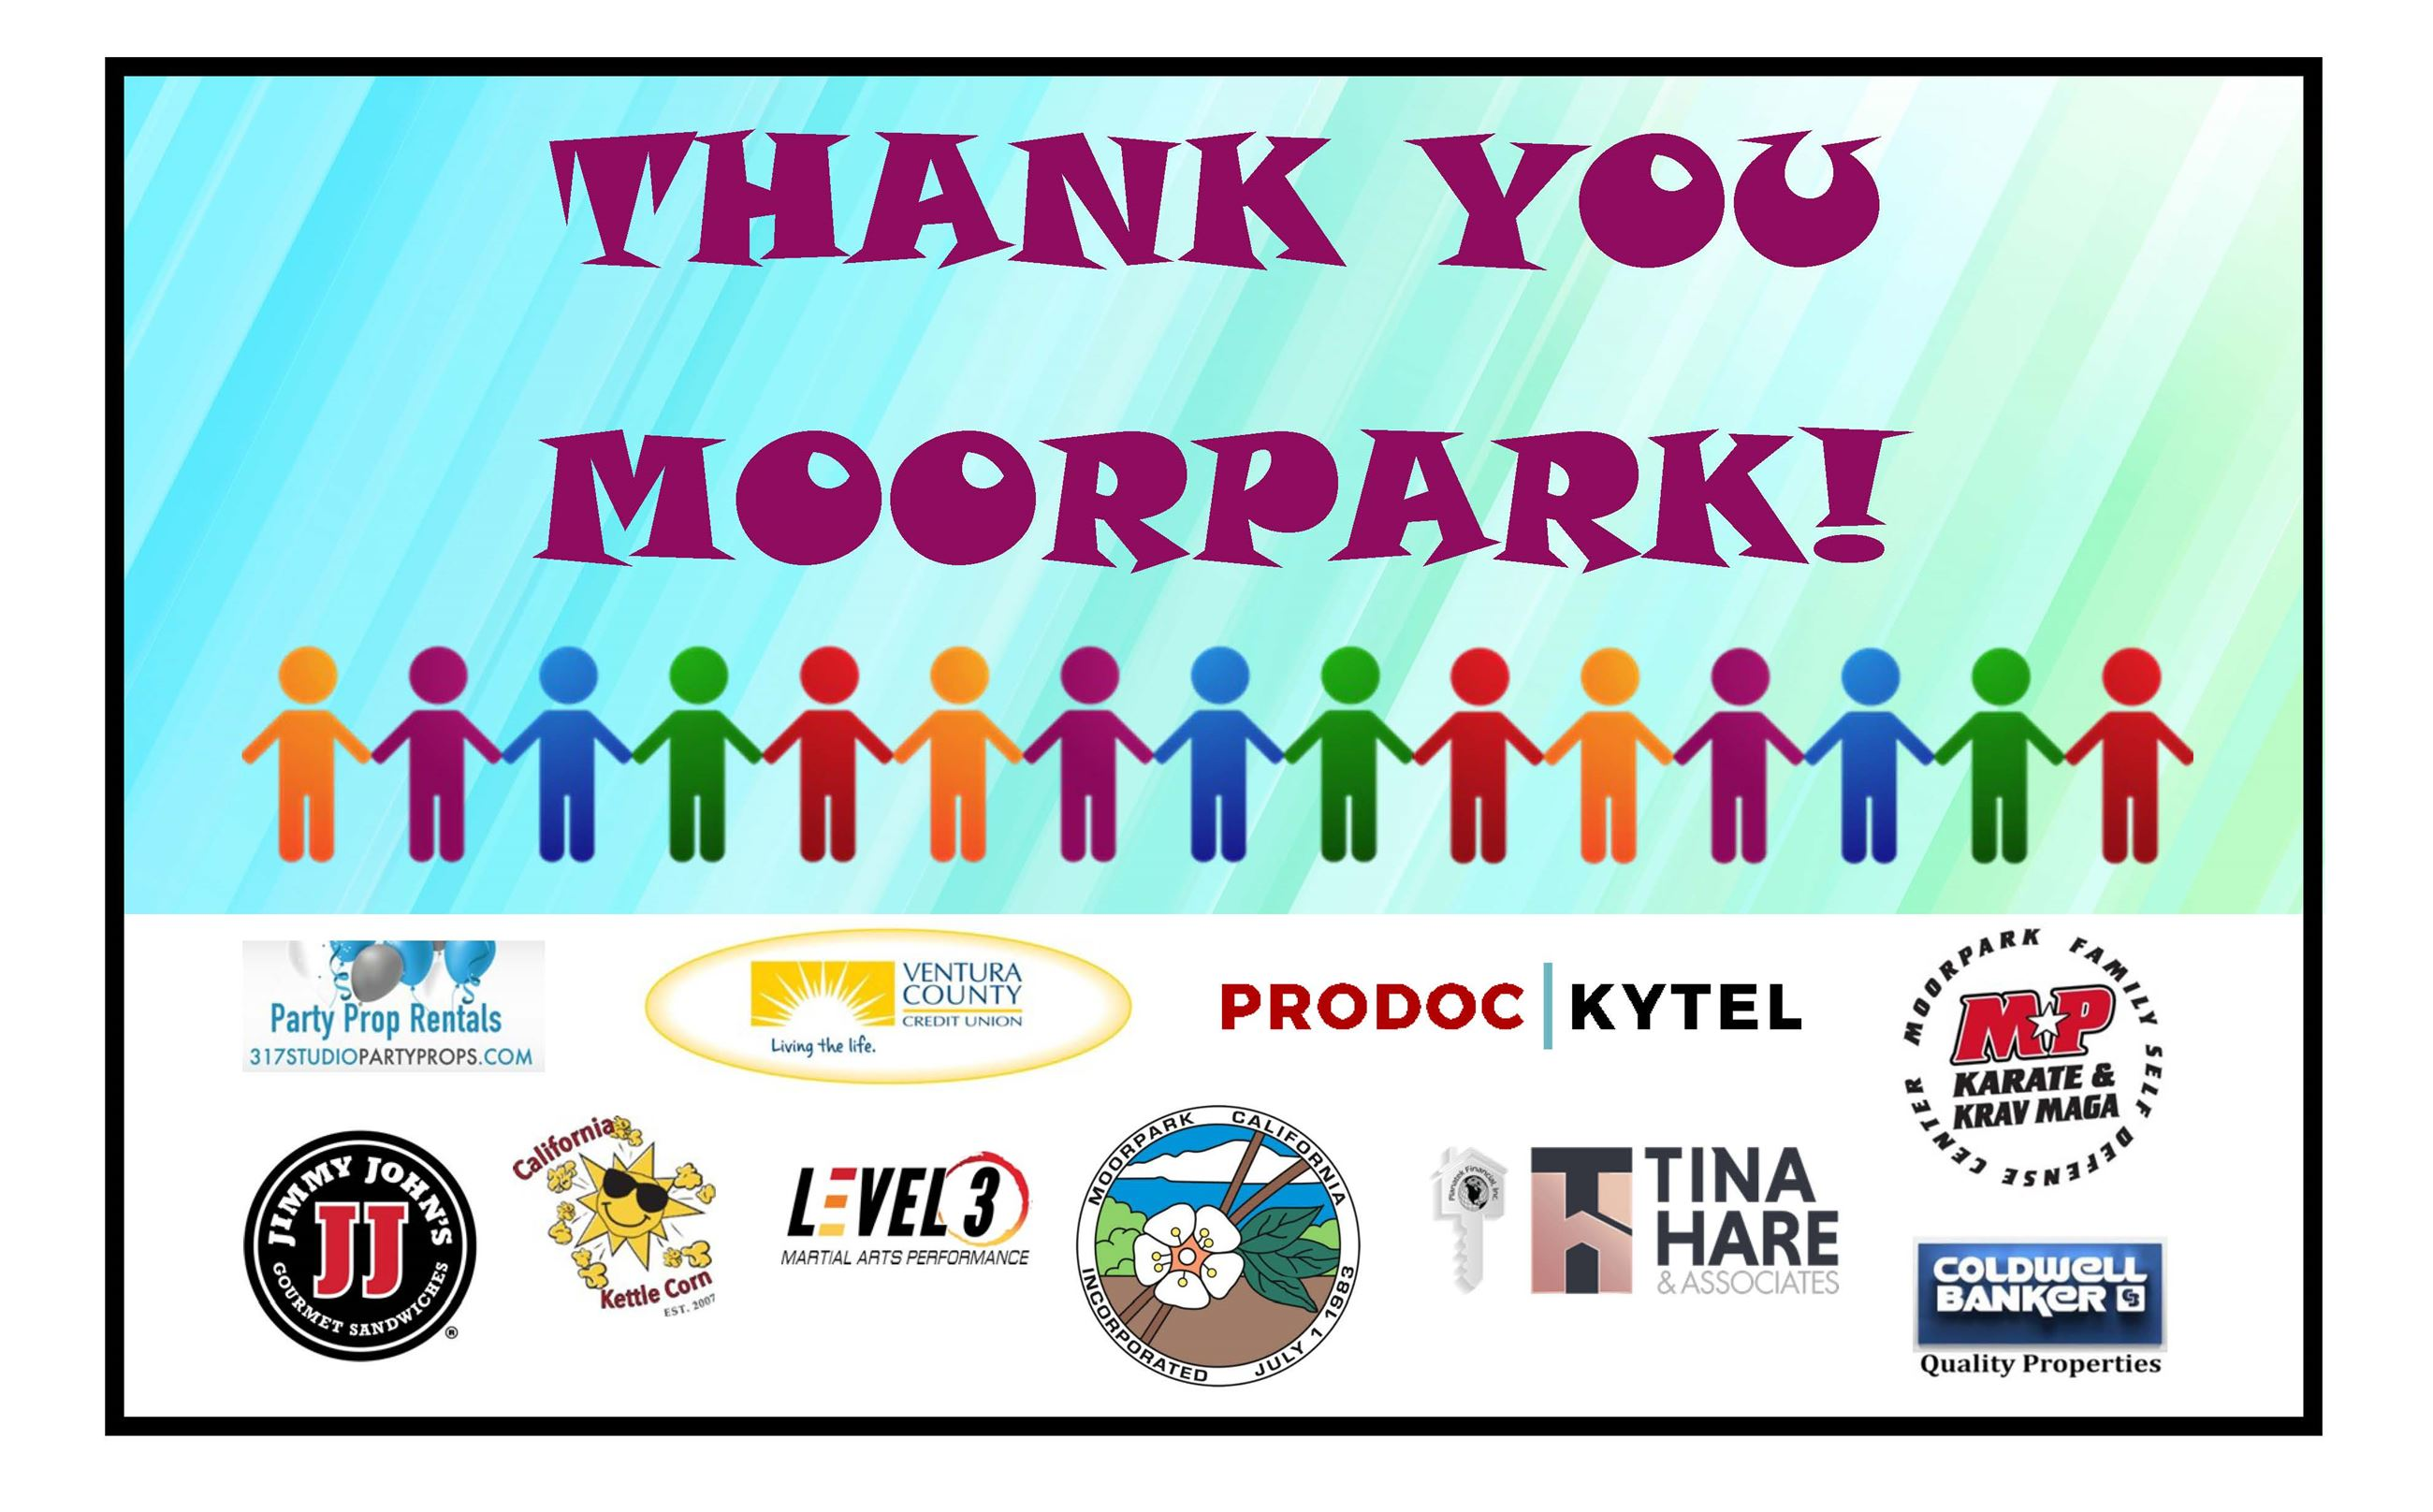 Thank You Moorpark